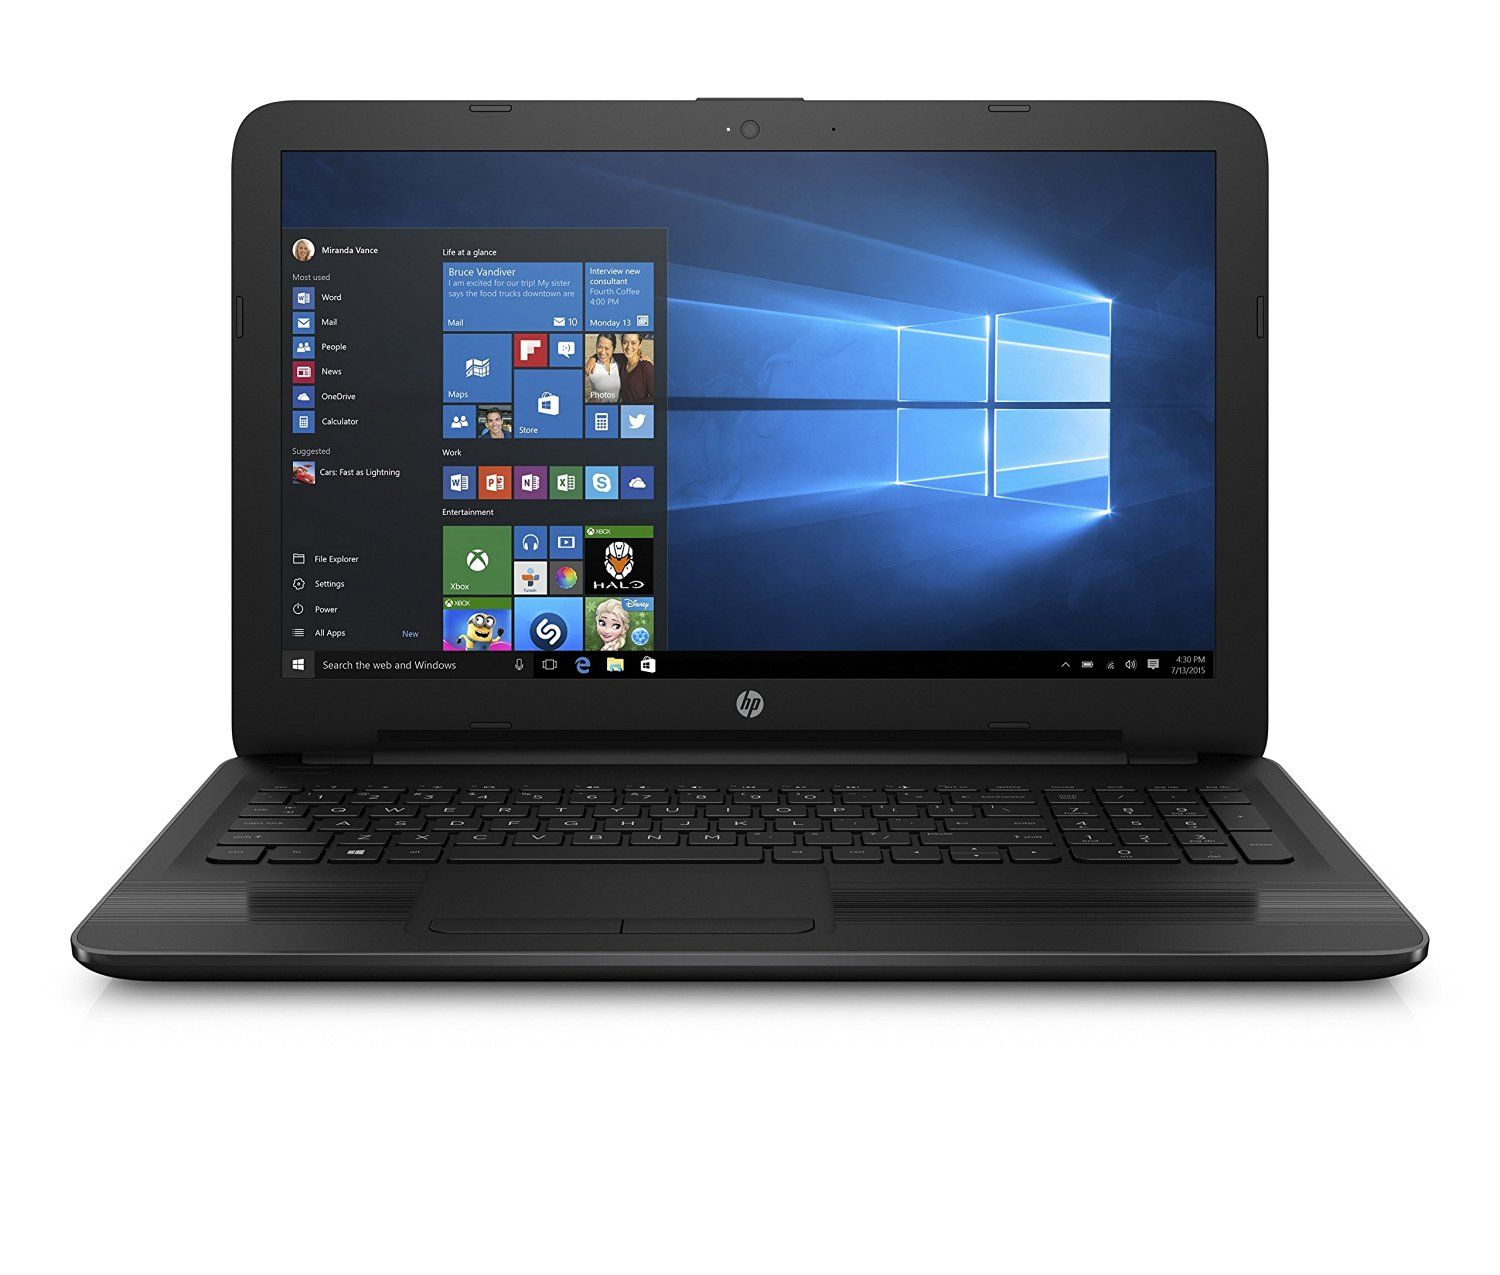 Buy HP 15BE001TU 15.6inch Laptop online at low price in